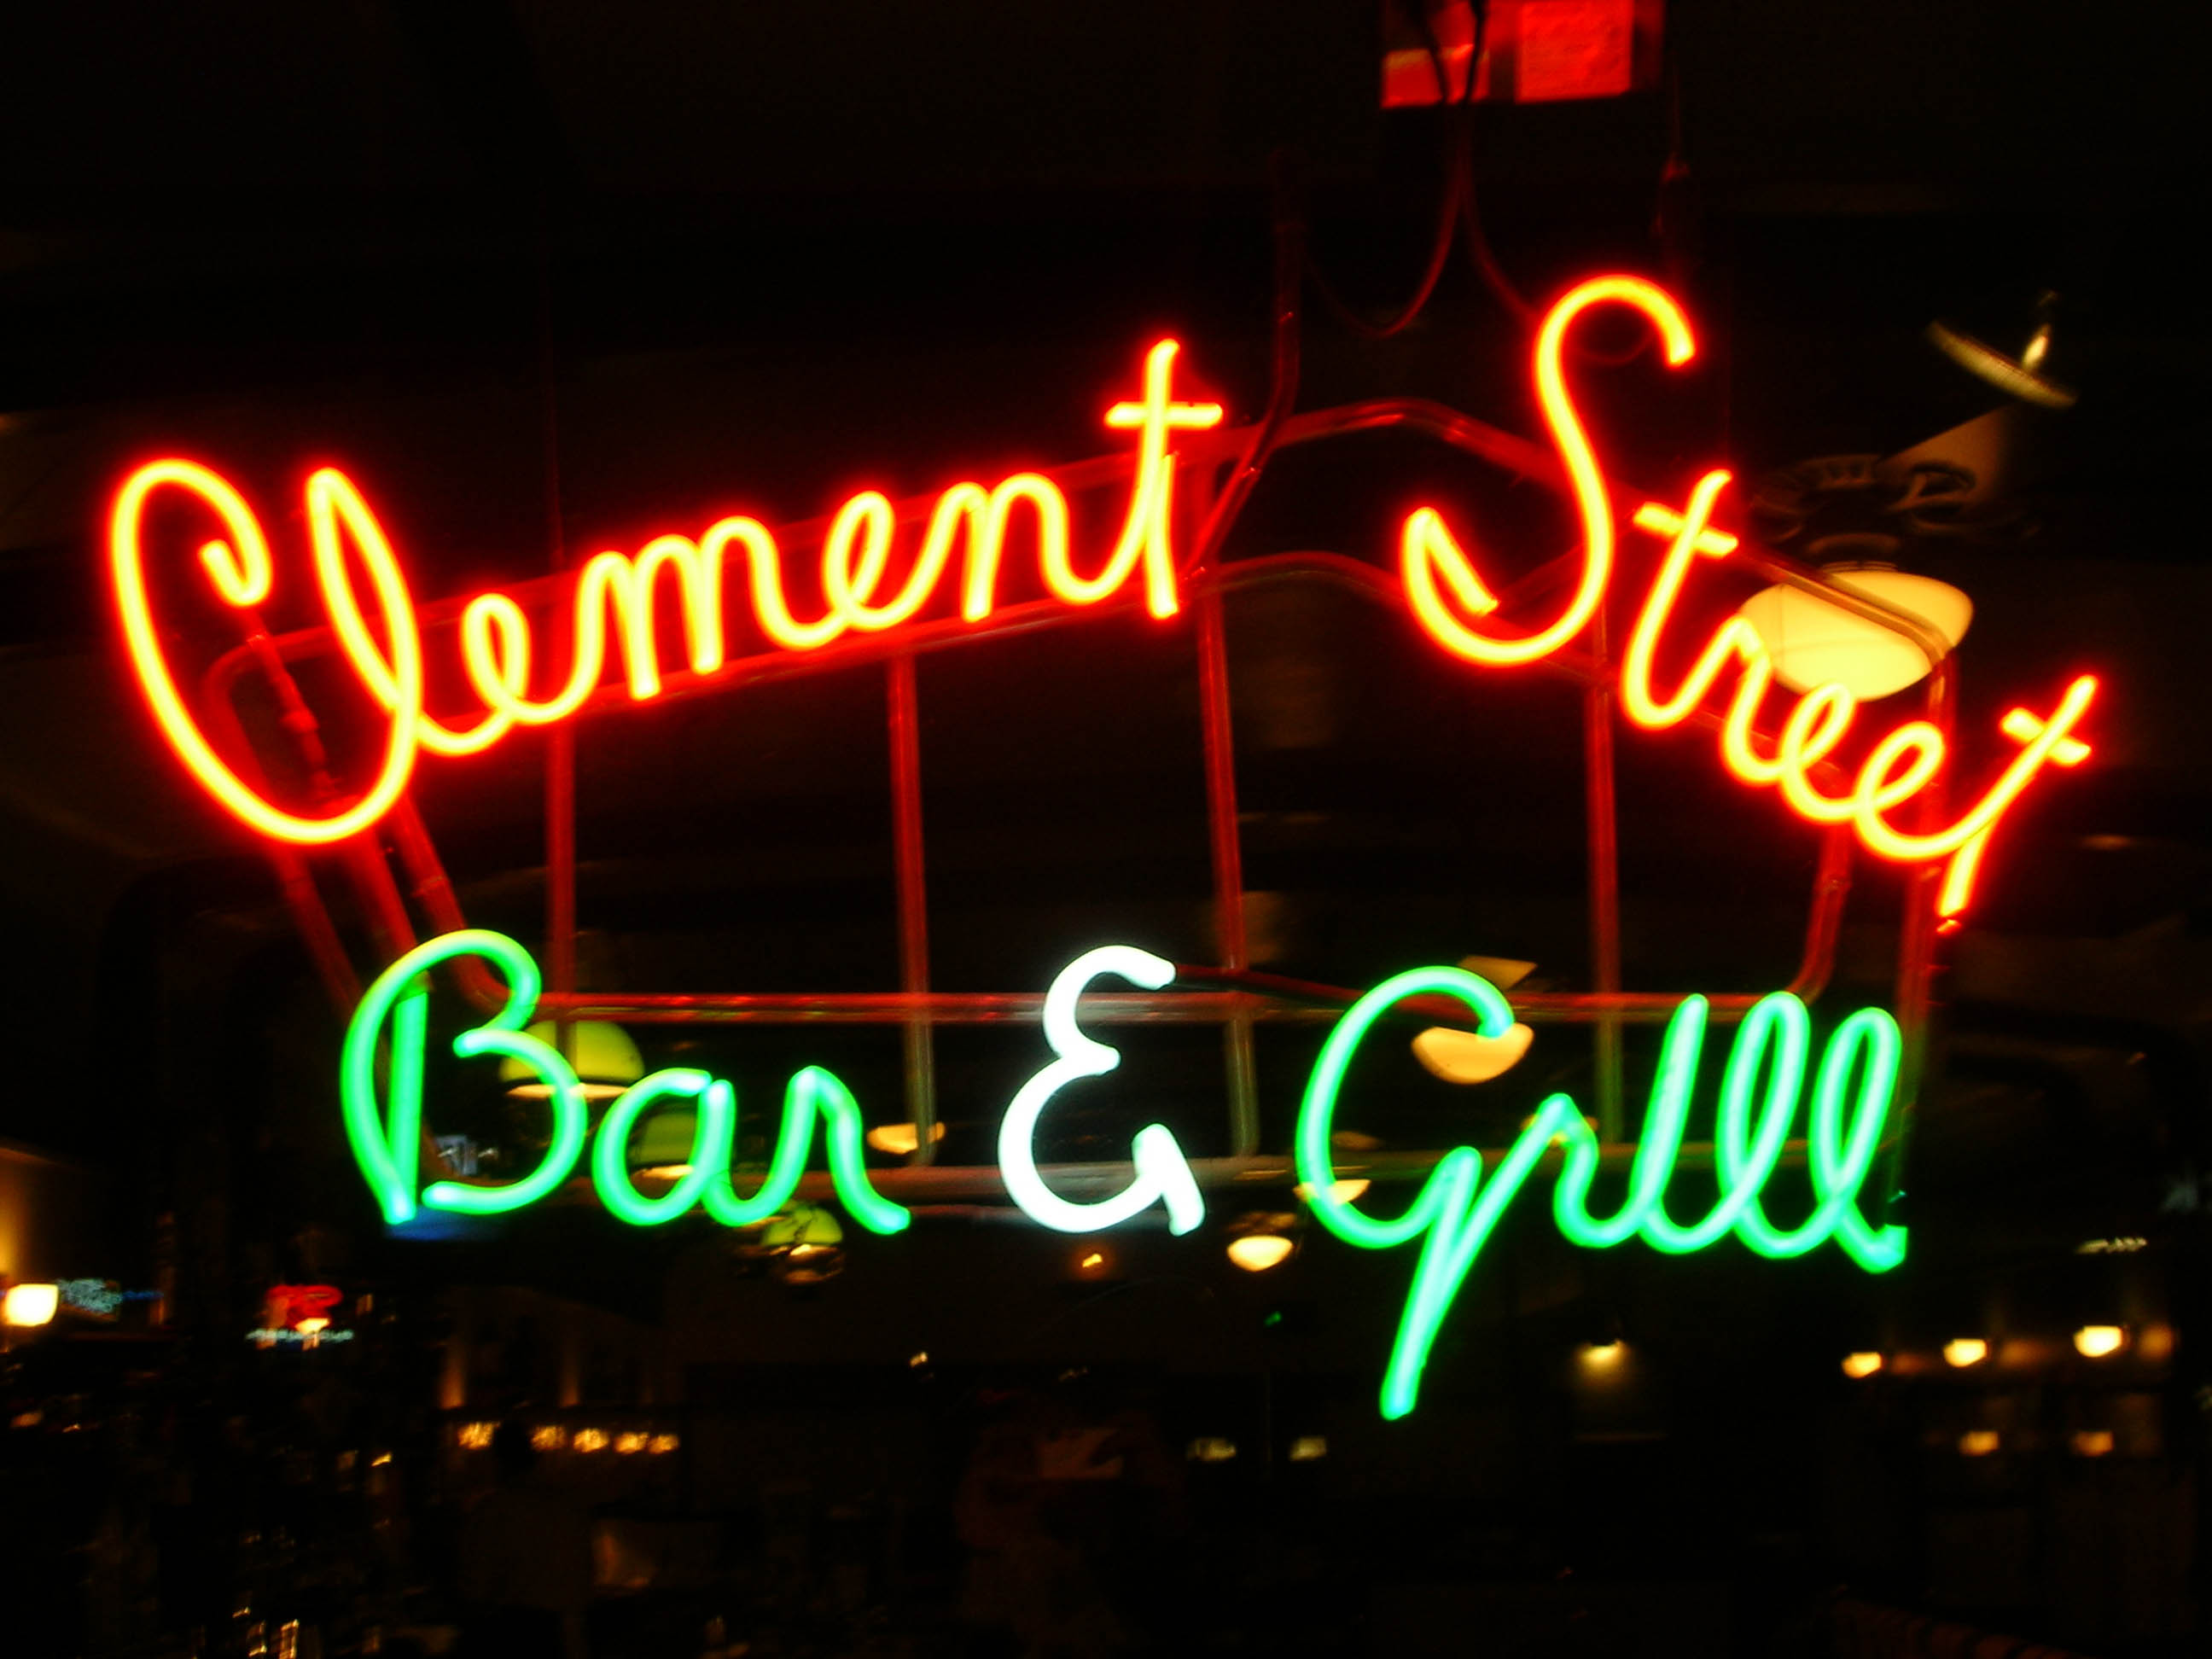 Another old haunt of mine (from when I was a little kid, that is). For an old-school atmosphere and a really good burger try the Clement St. Bar & Grill in San Francisco.